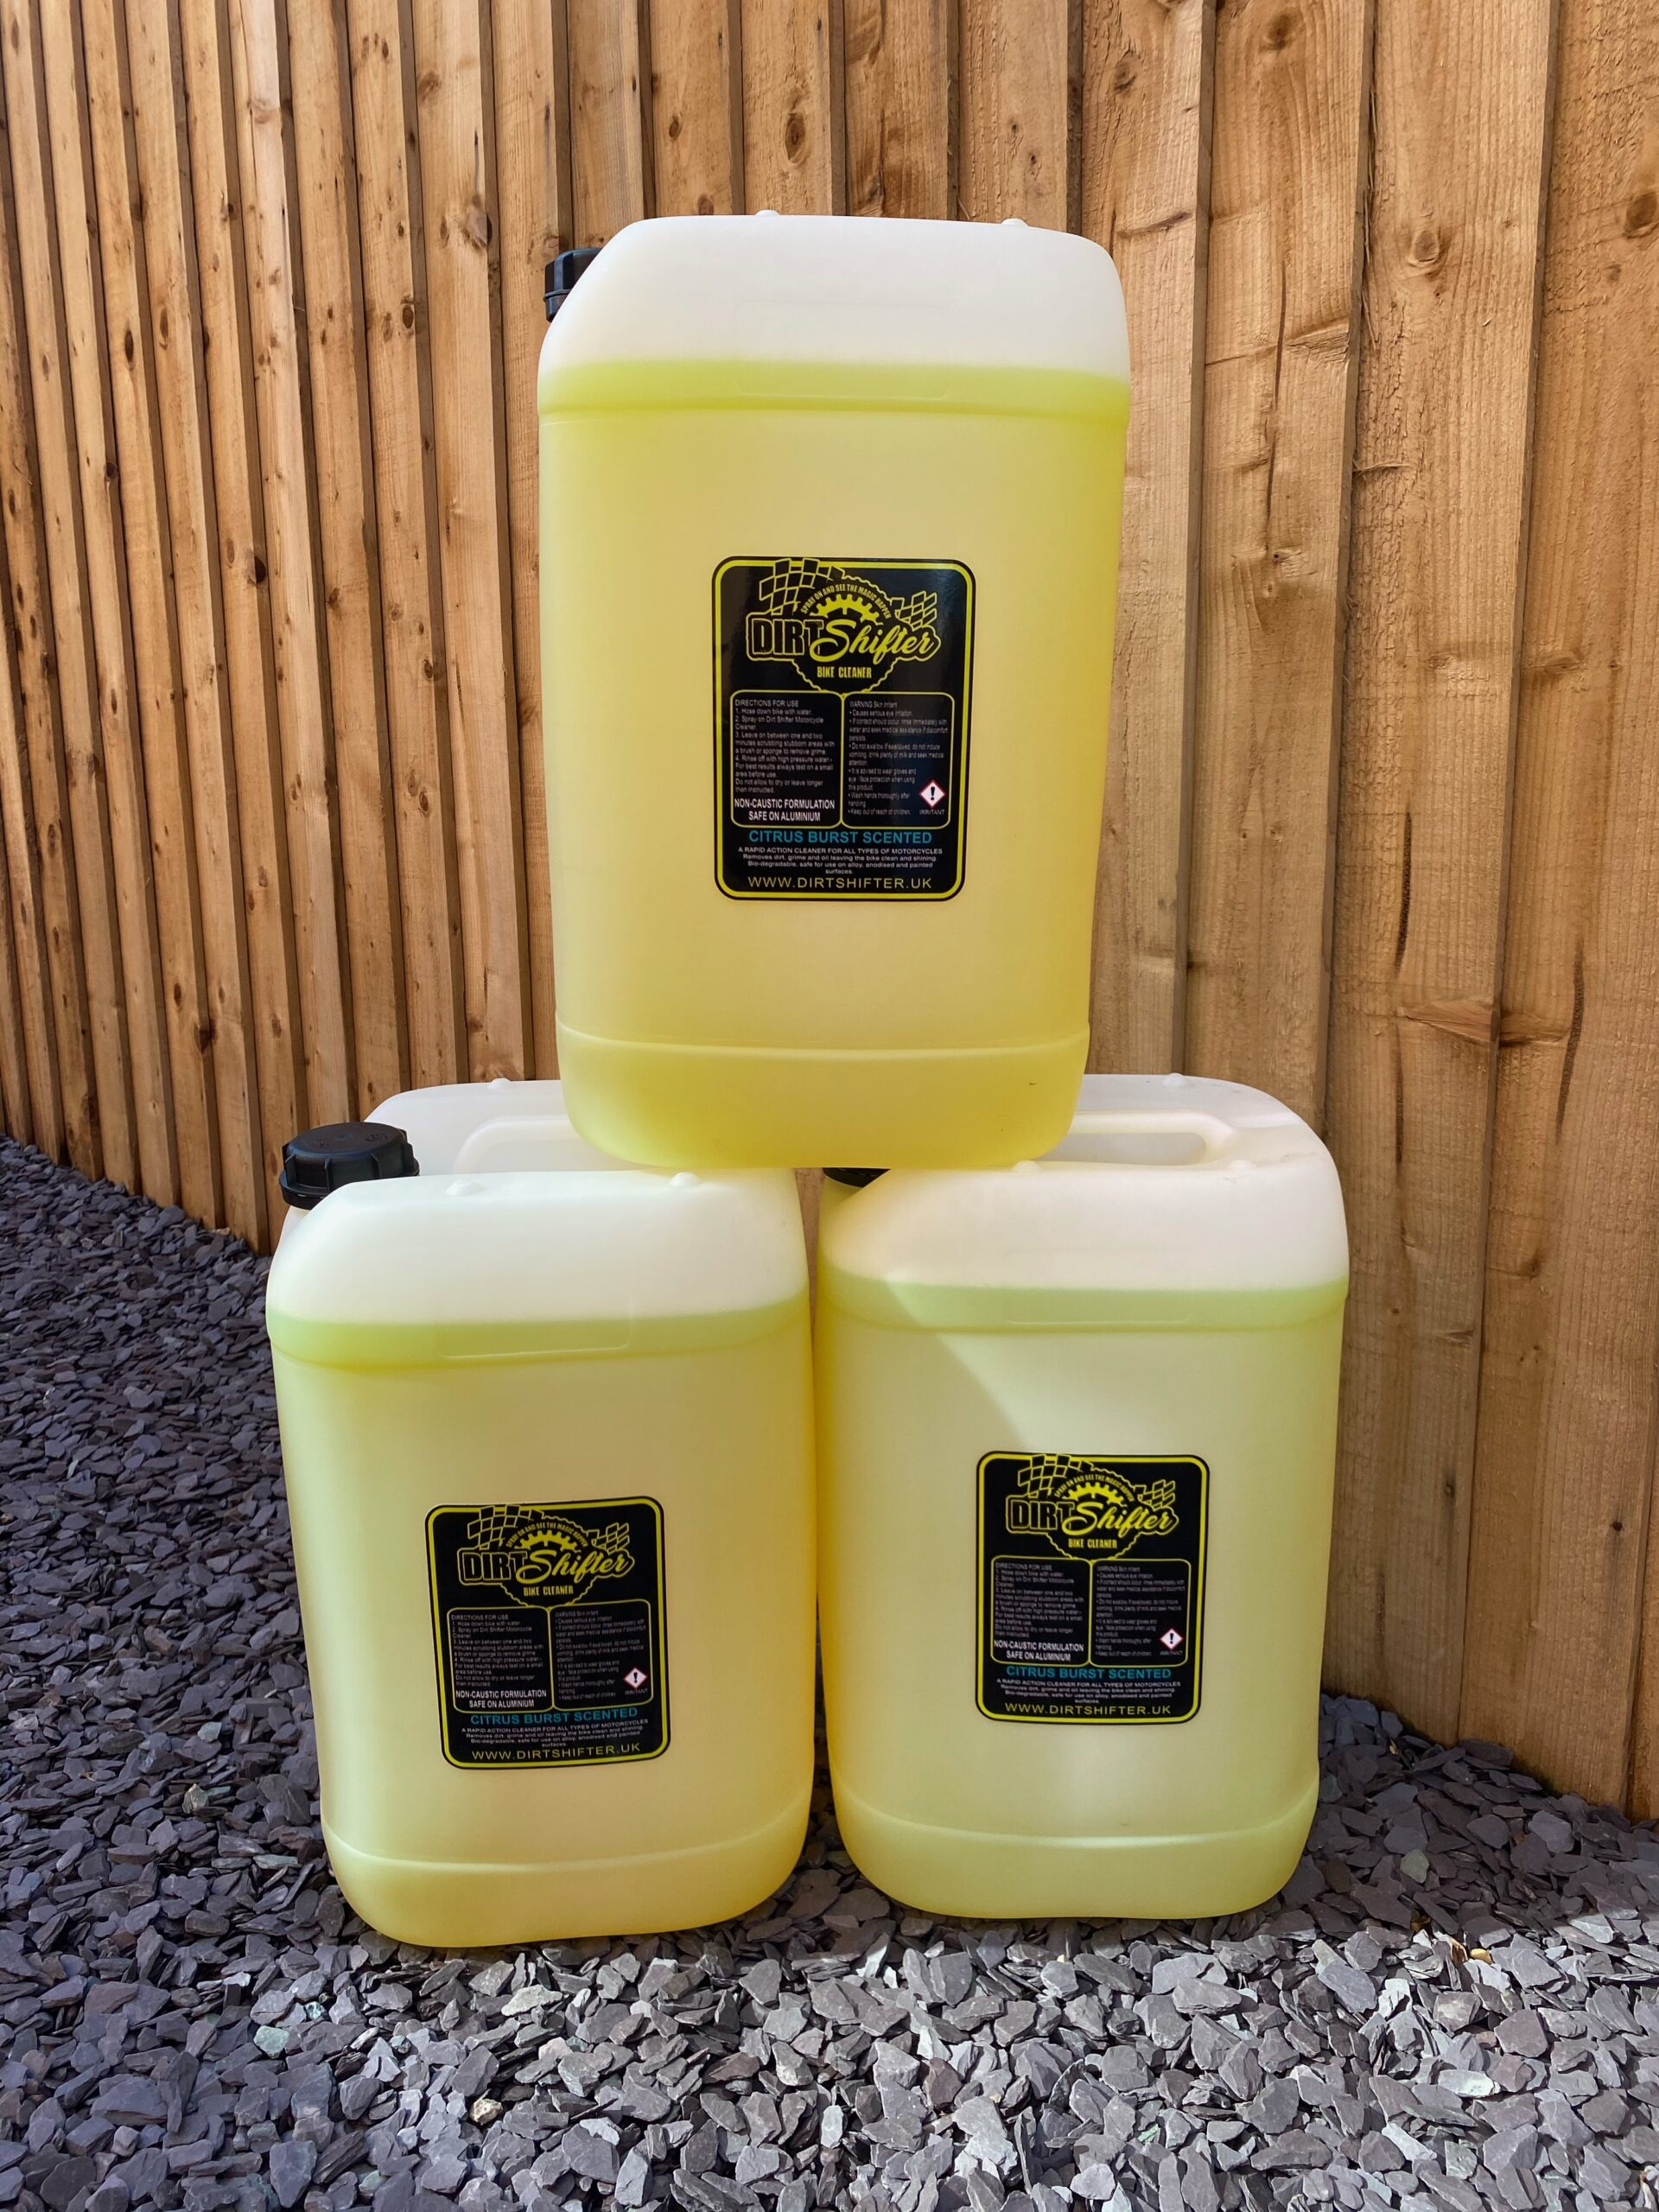 Dirtshifter cleaning products